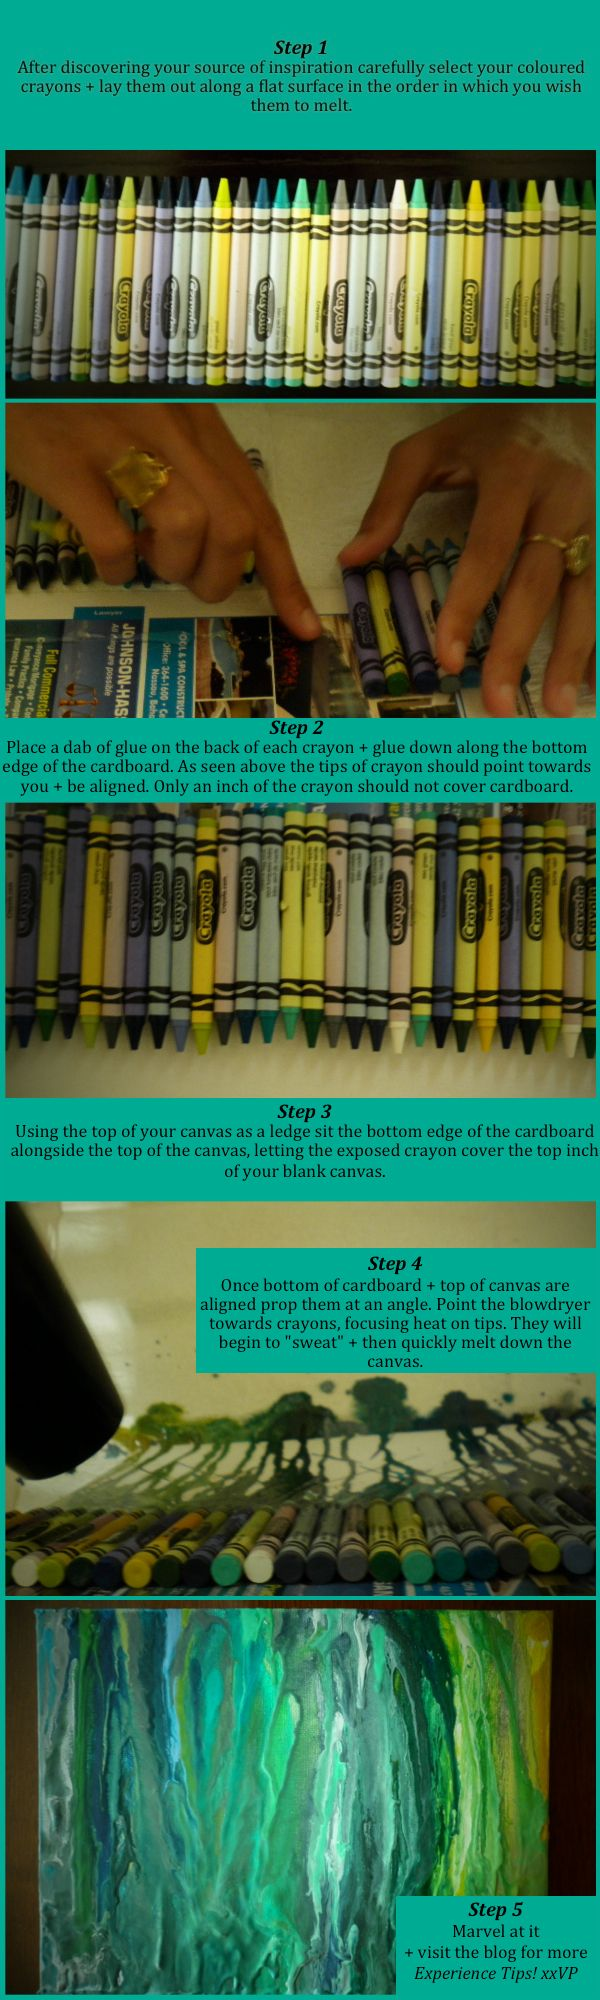 How to make melted crayon art...without gluing the crayon to the canvas: Crafts Ideas, Melted Crayons Art, Crayonart, Melted Crayon Art, Diy Craft, Crayons Art Without, Art Without Glu, Crayons Melted, Random Art